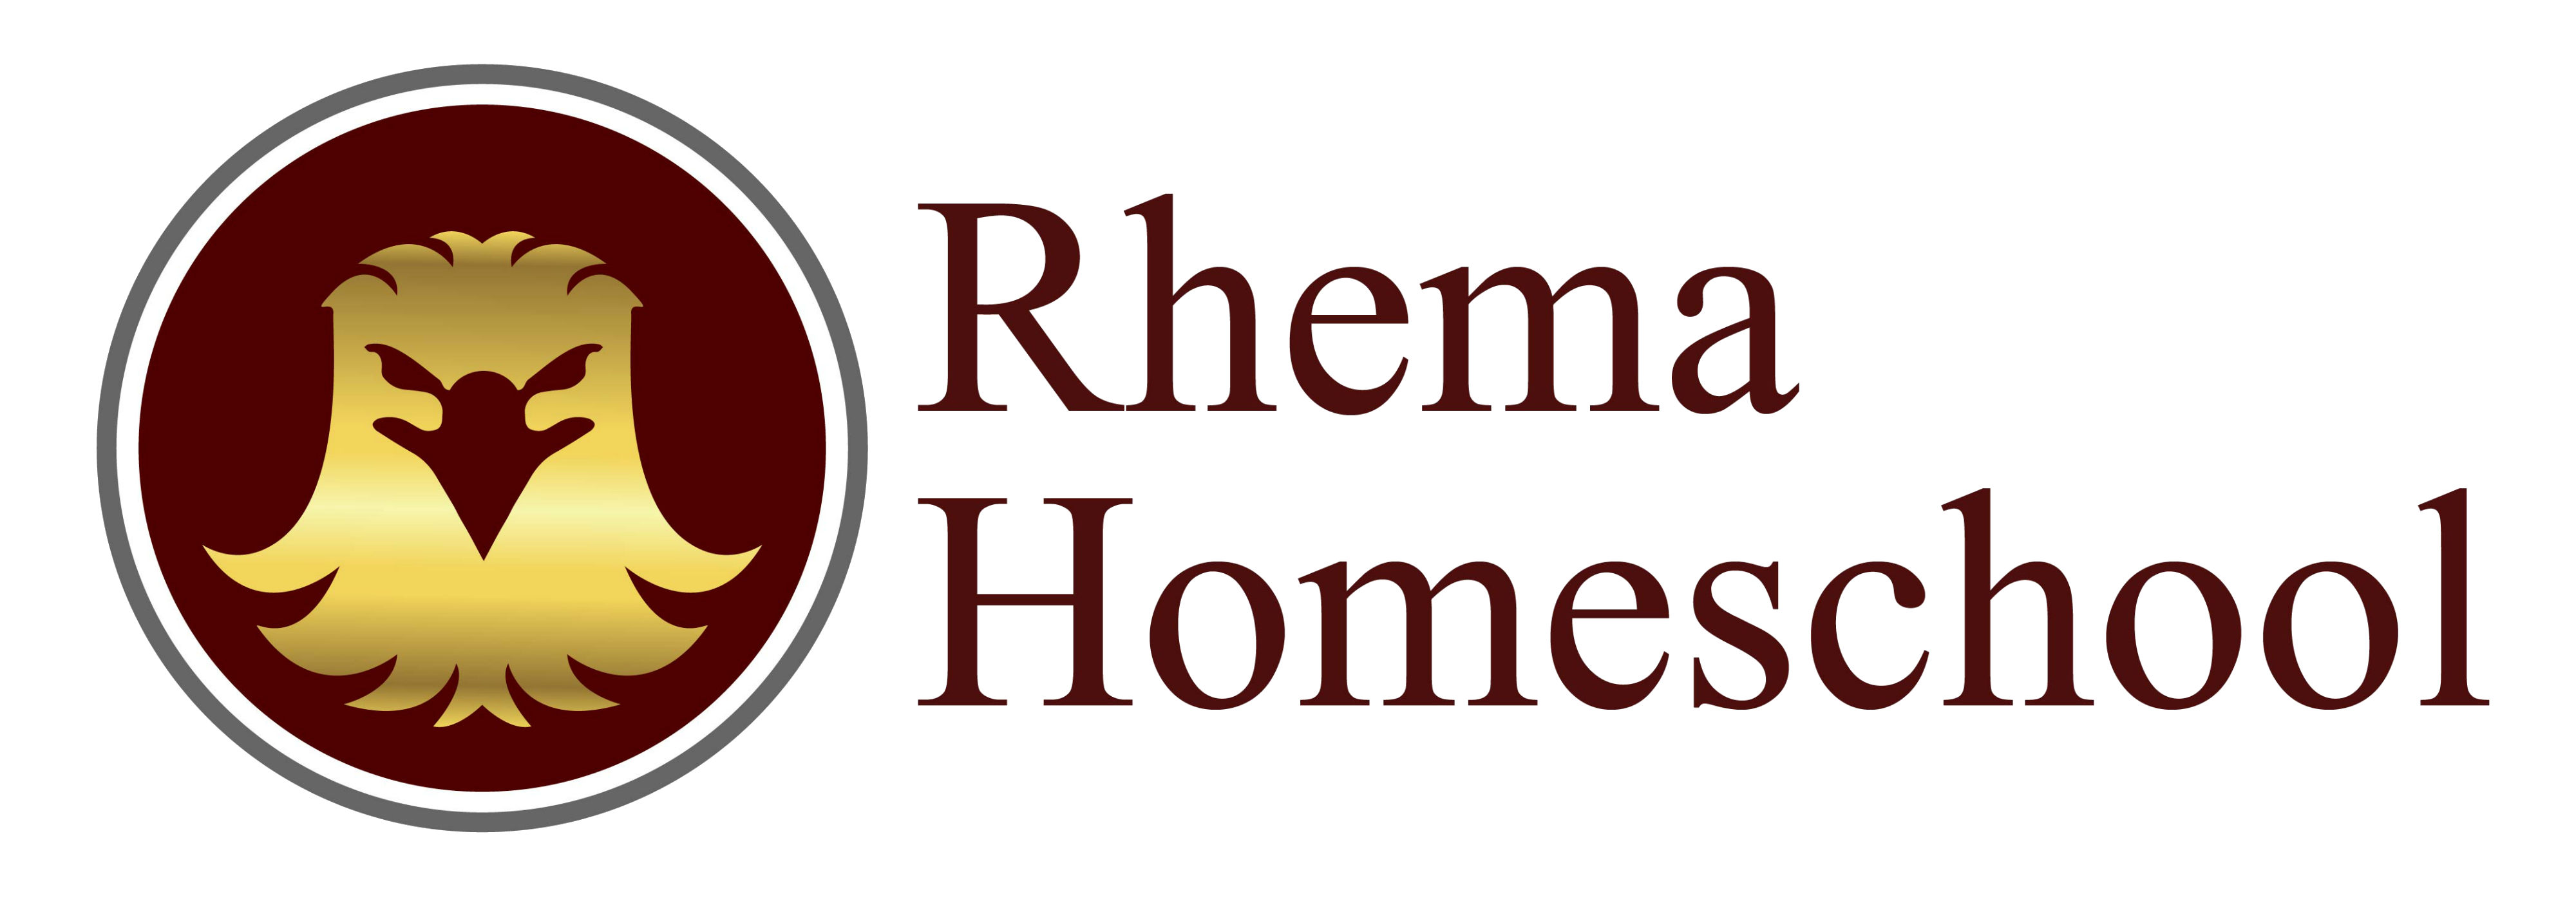 Rhema Homeschool